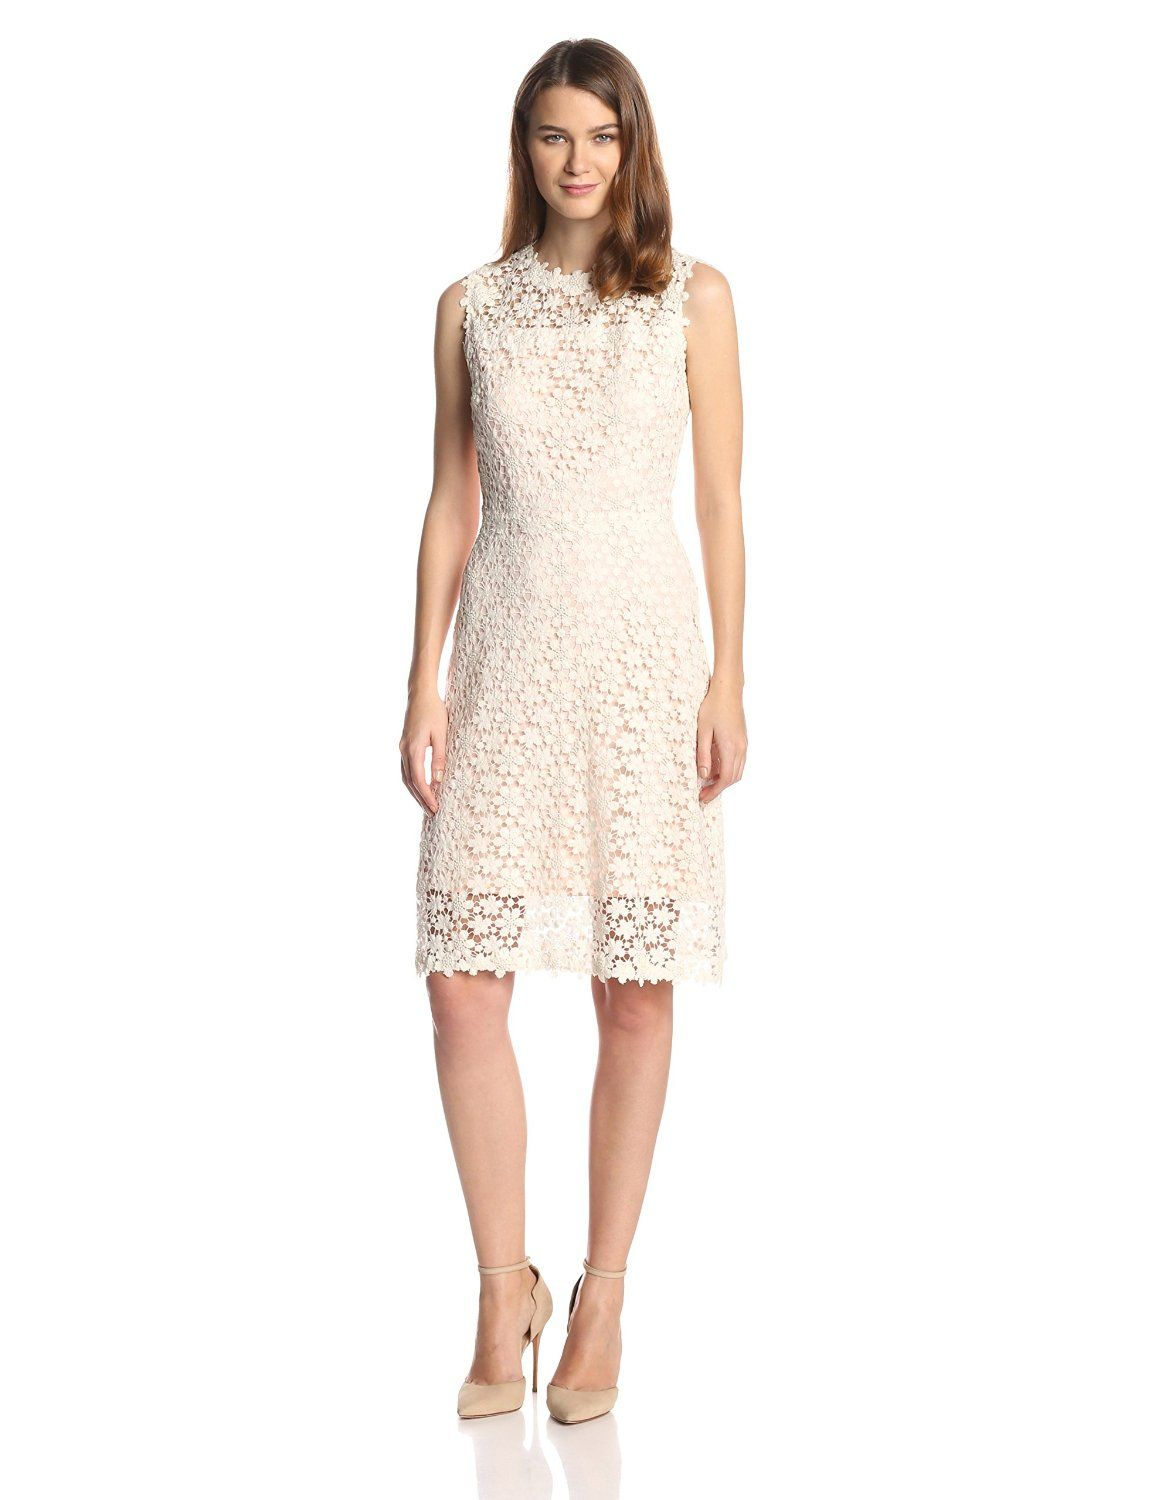 Ophelia Floral Lace Flared Dress By Elie Tahari Lace Shift Dress Lace Pink Dress Lace Dress [ 1500 x 1154 Pixel ]